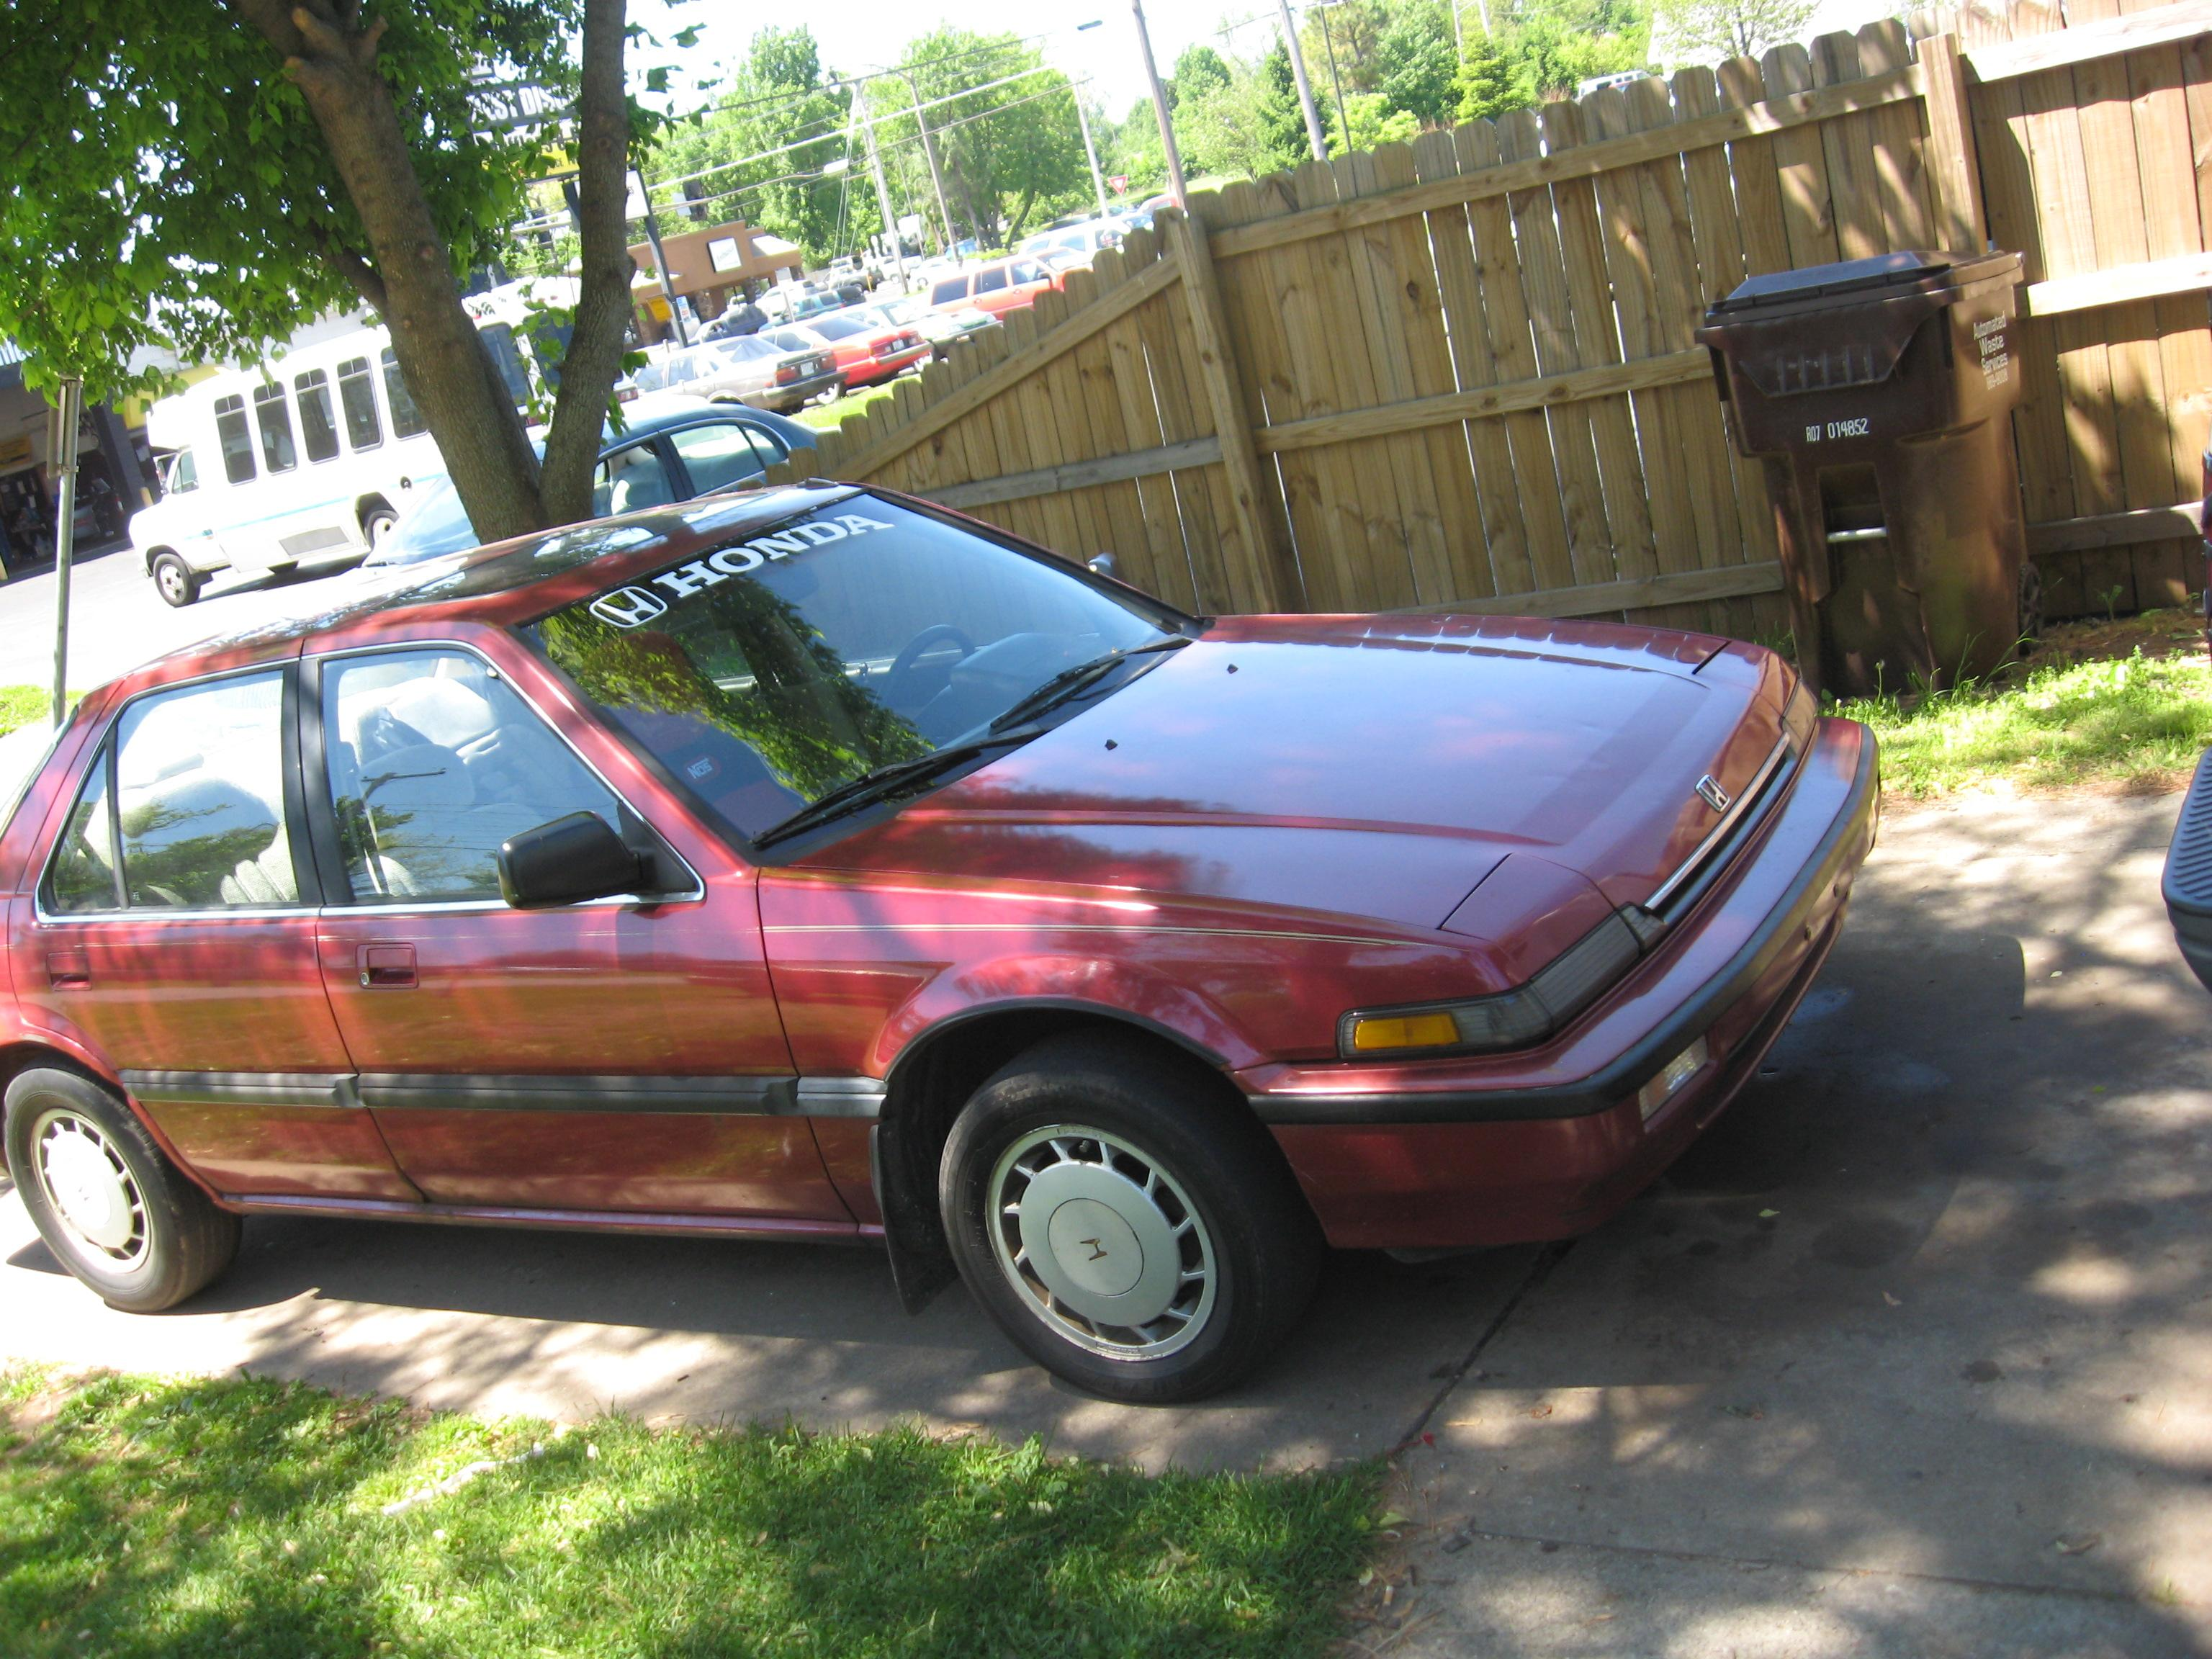 JesseyChatman's 1989 Honda Accord